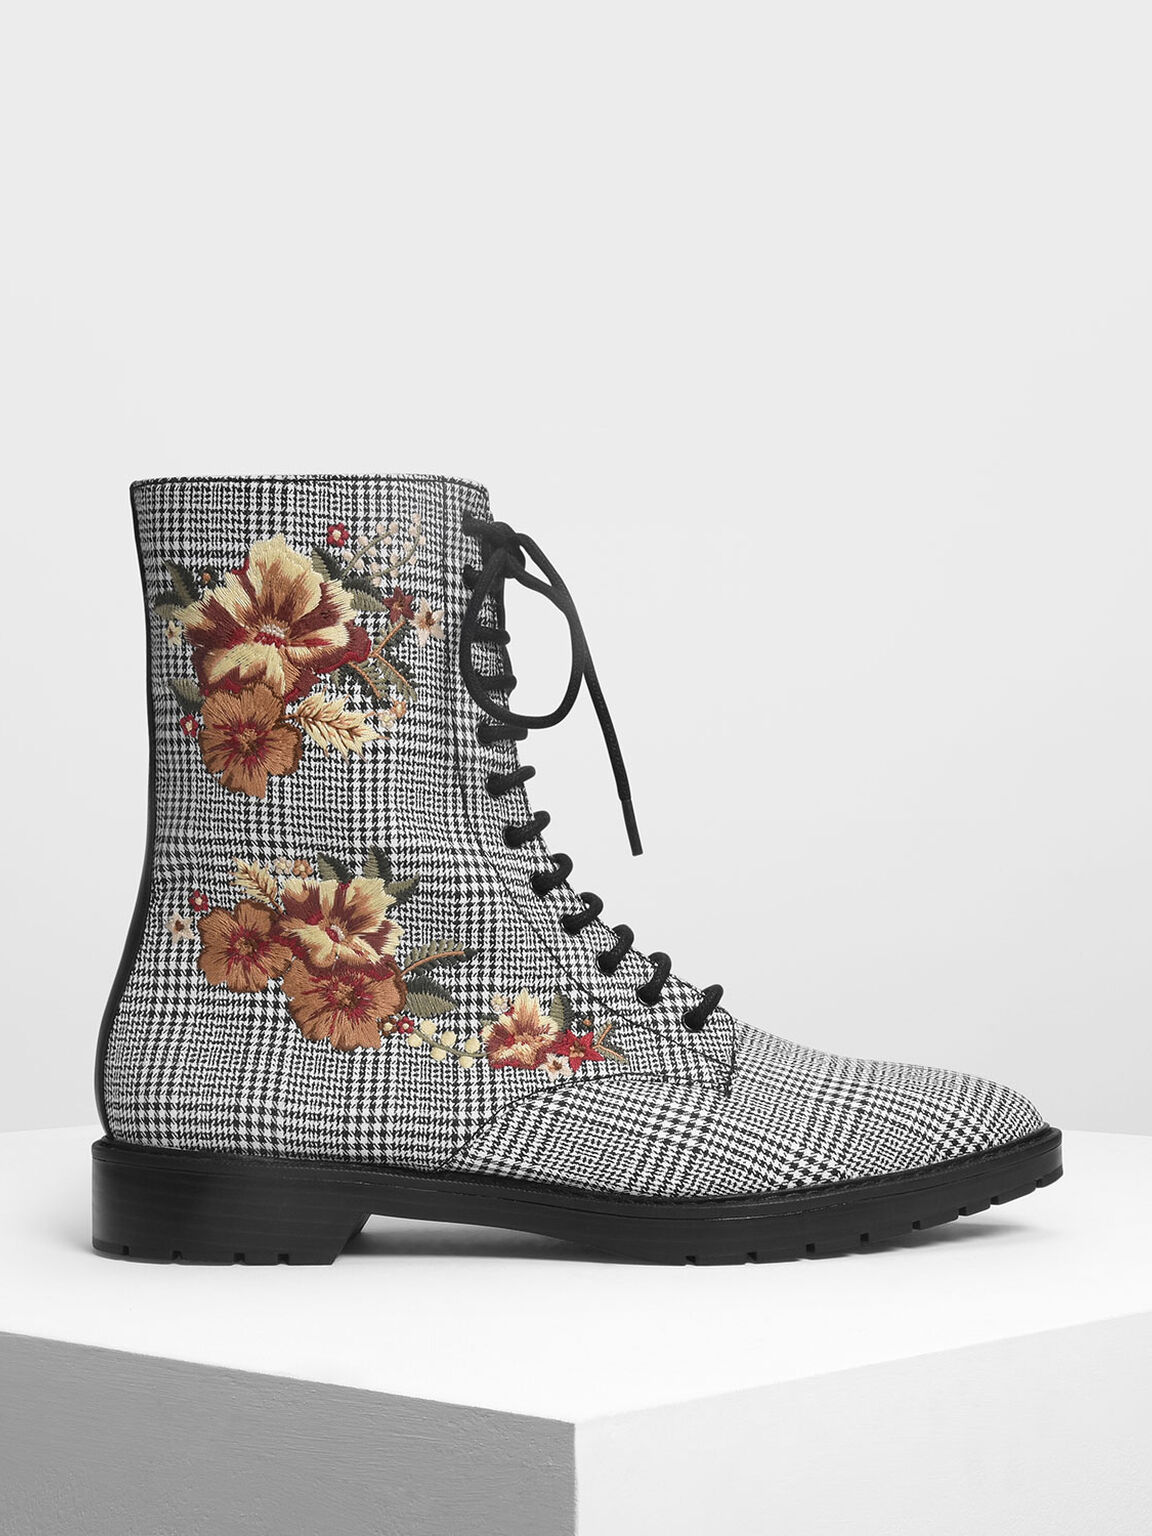 Floral Embroidery Pointed Toe Calf Boots, Multi, hi-res